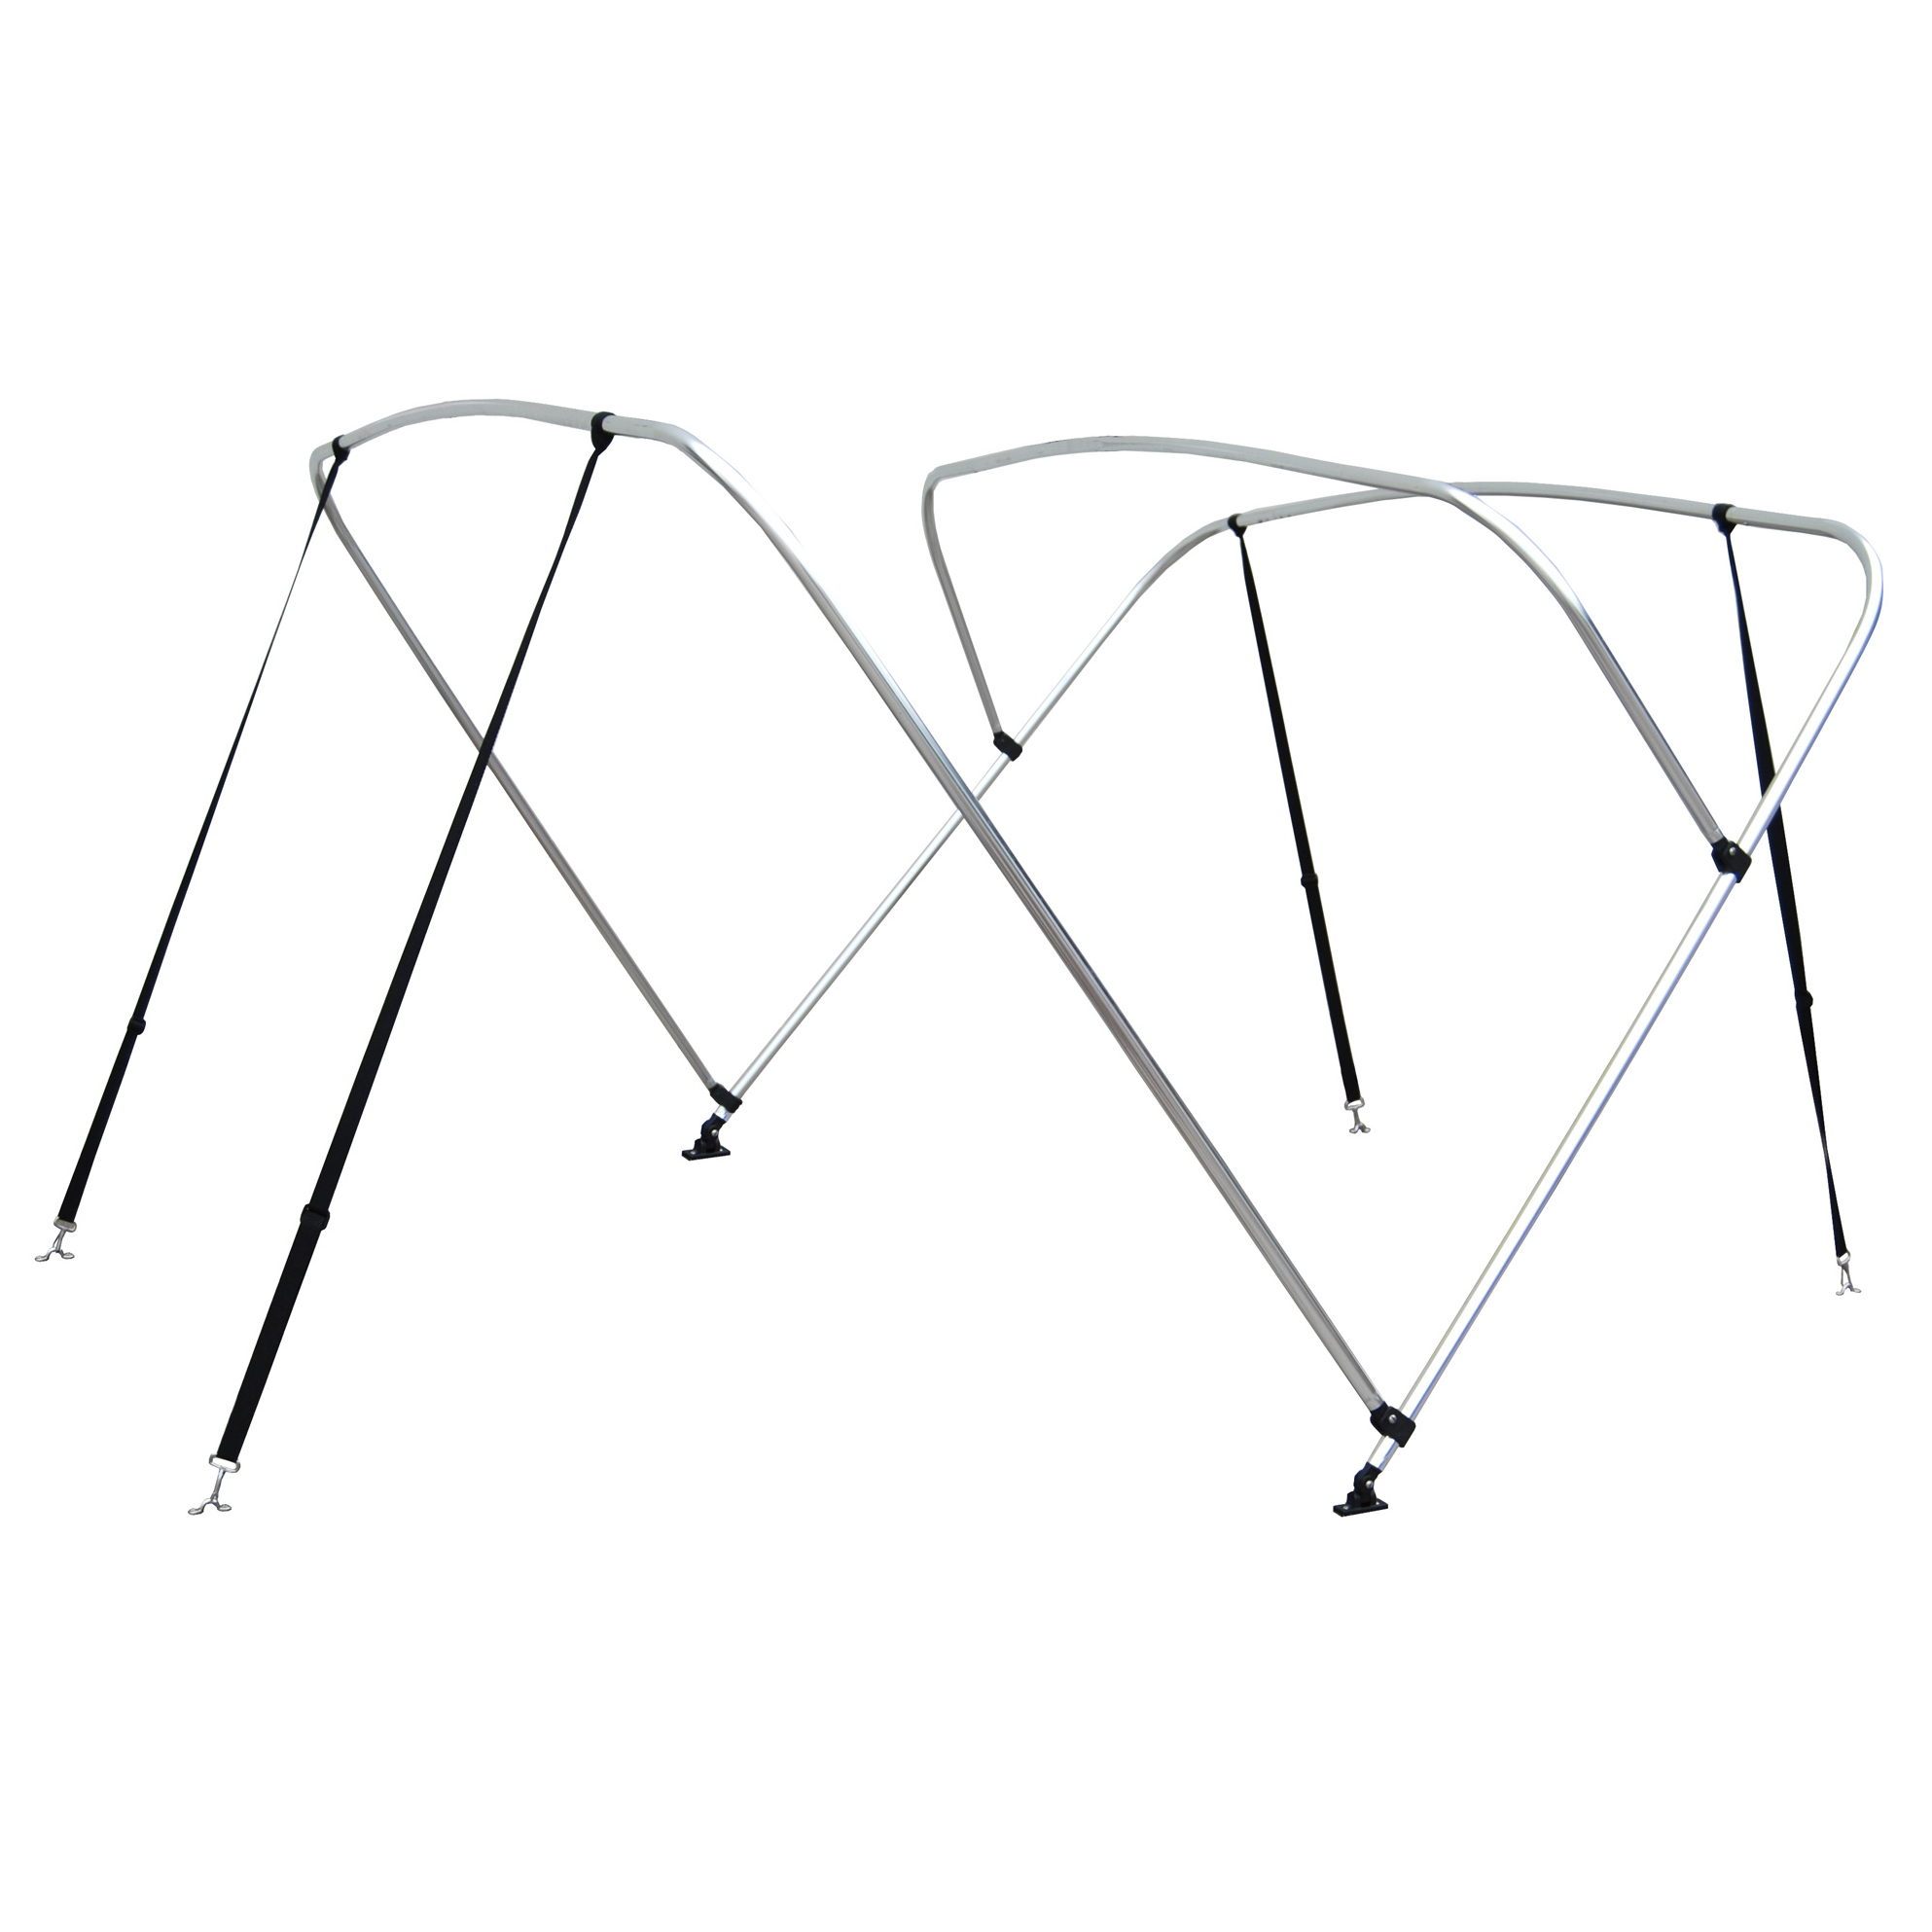 Shademate White Vinyl Stainless 4-Bow Bimini Top 8'L x 54''H 79''-84'' Wide